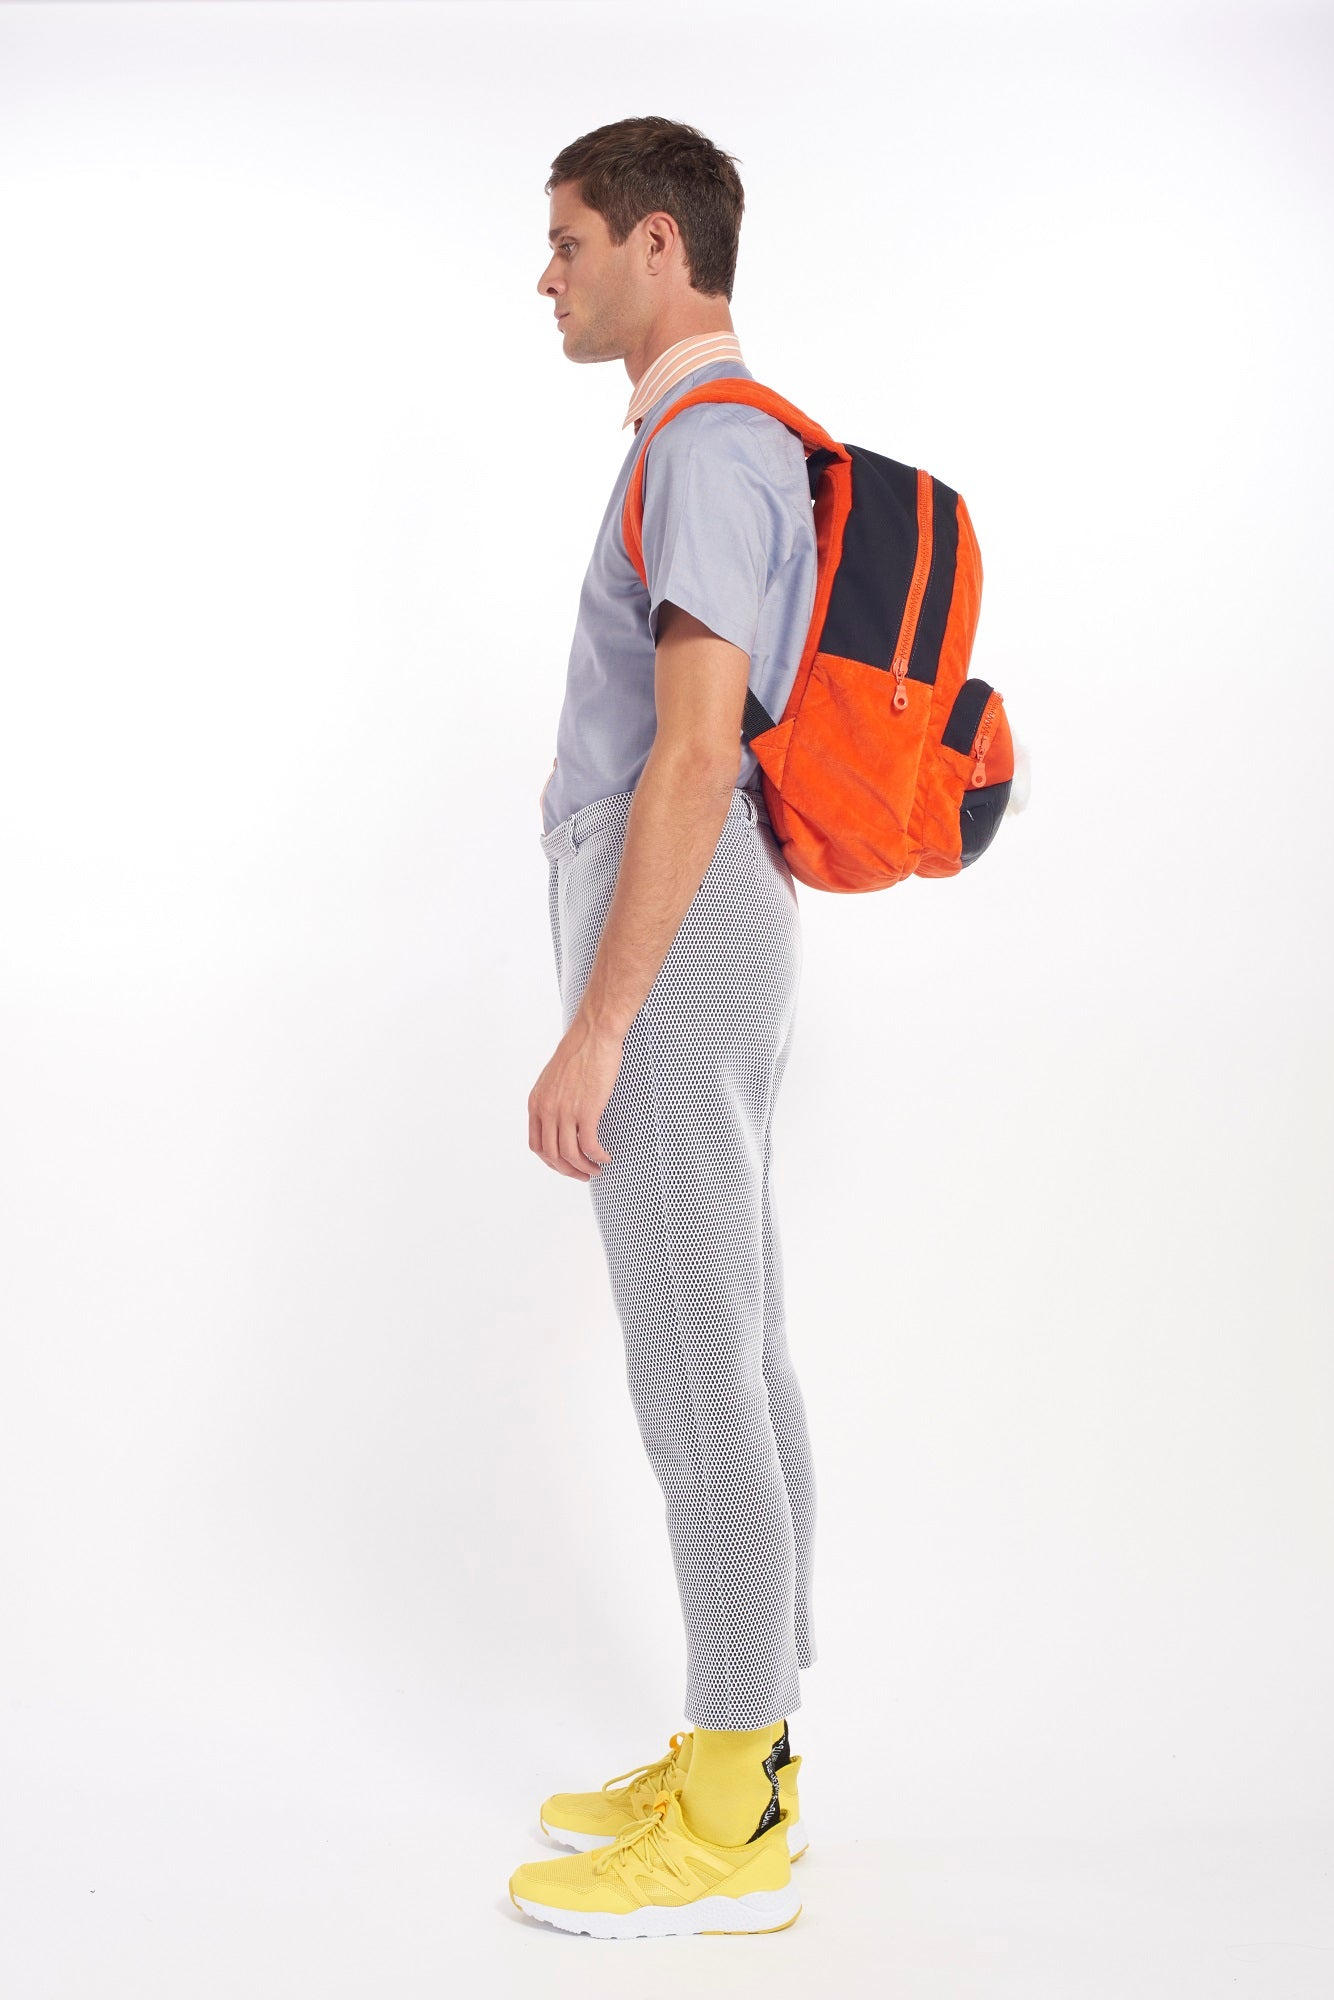 Laurenceairline - Bacara Orange Backpack